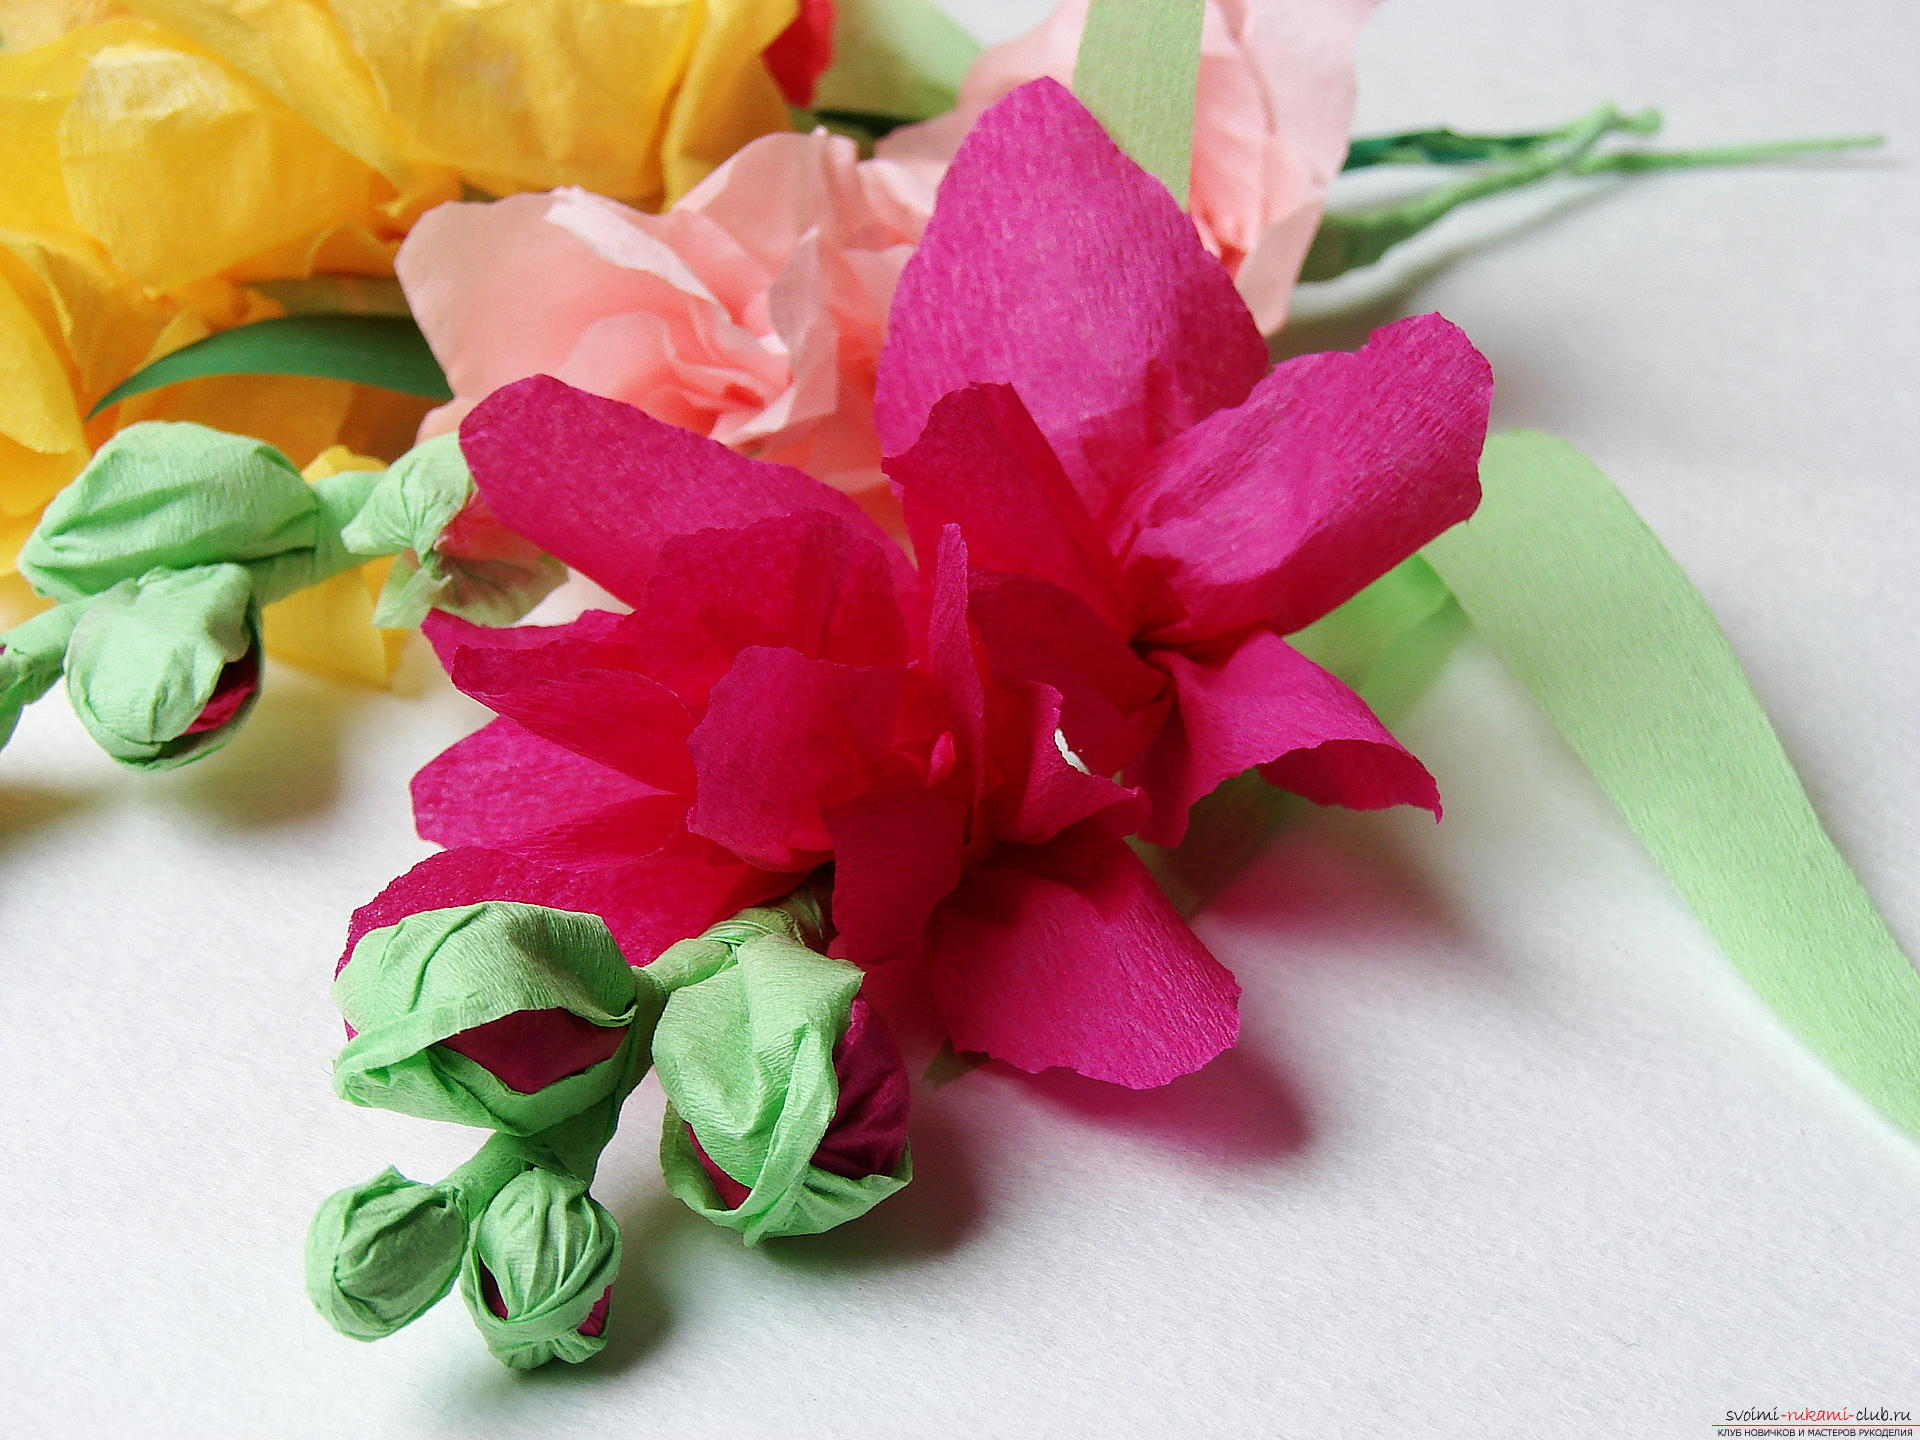 This master class will teach you how to make gladioli flowers from paper by yourself. Photo # 1